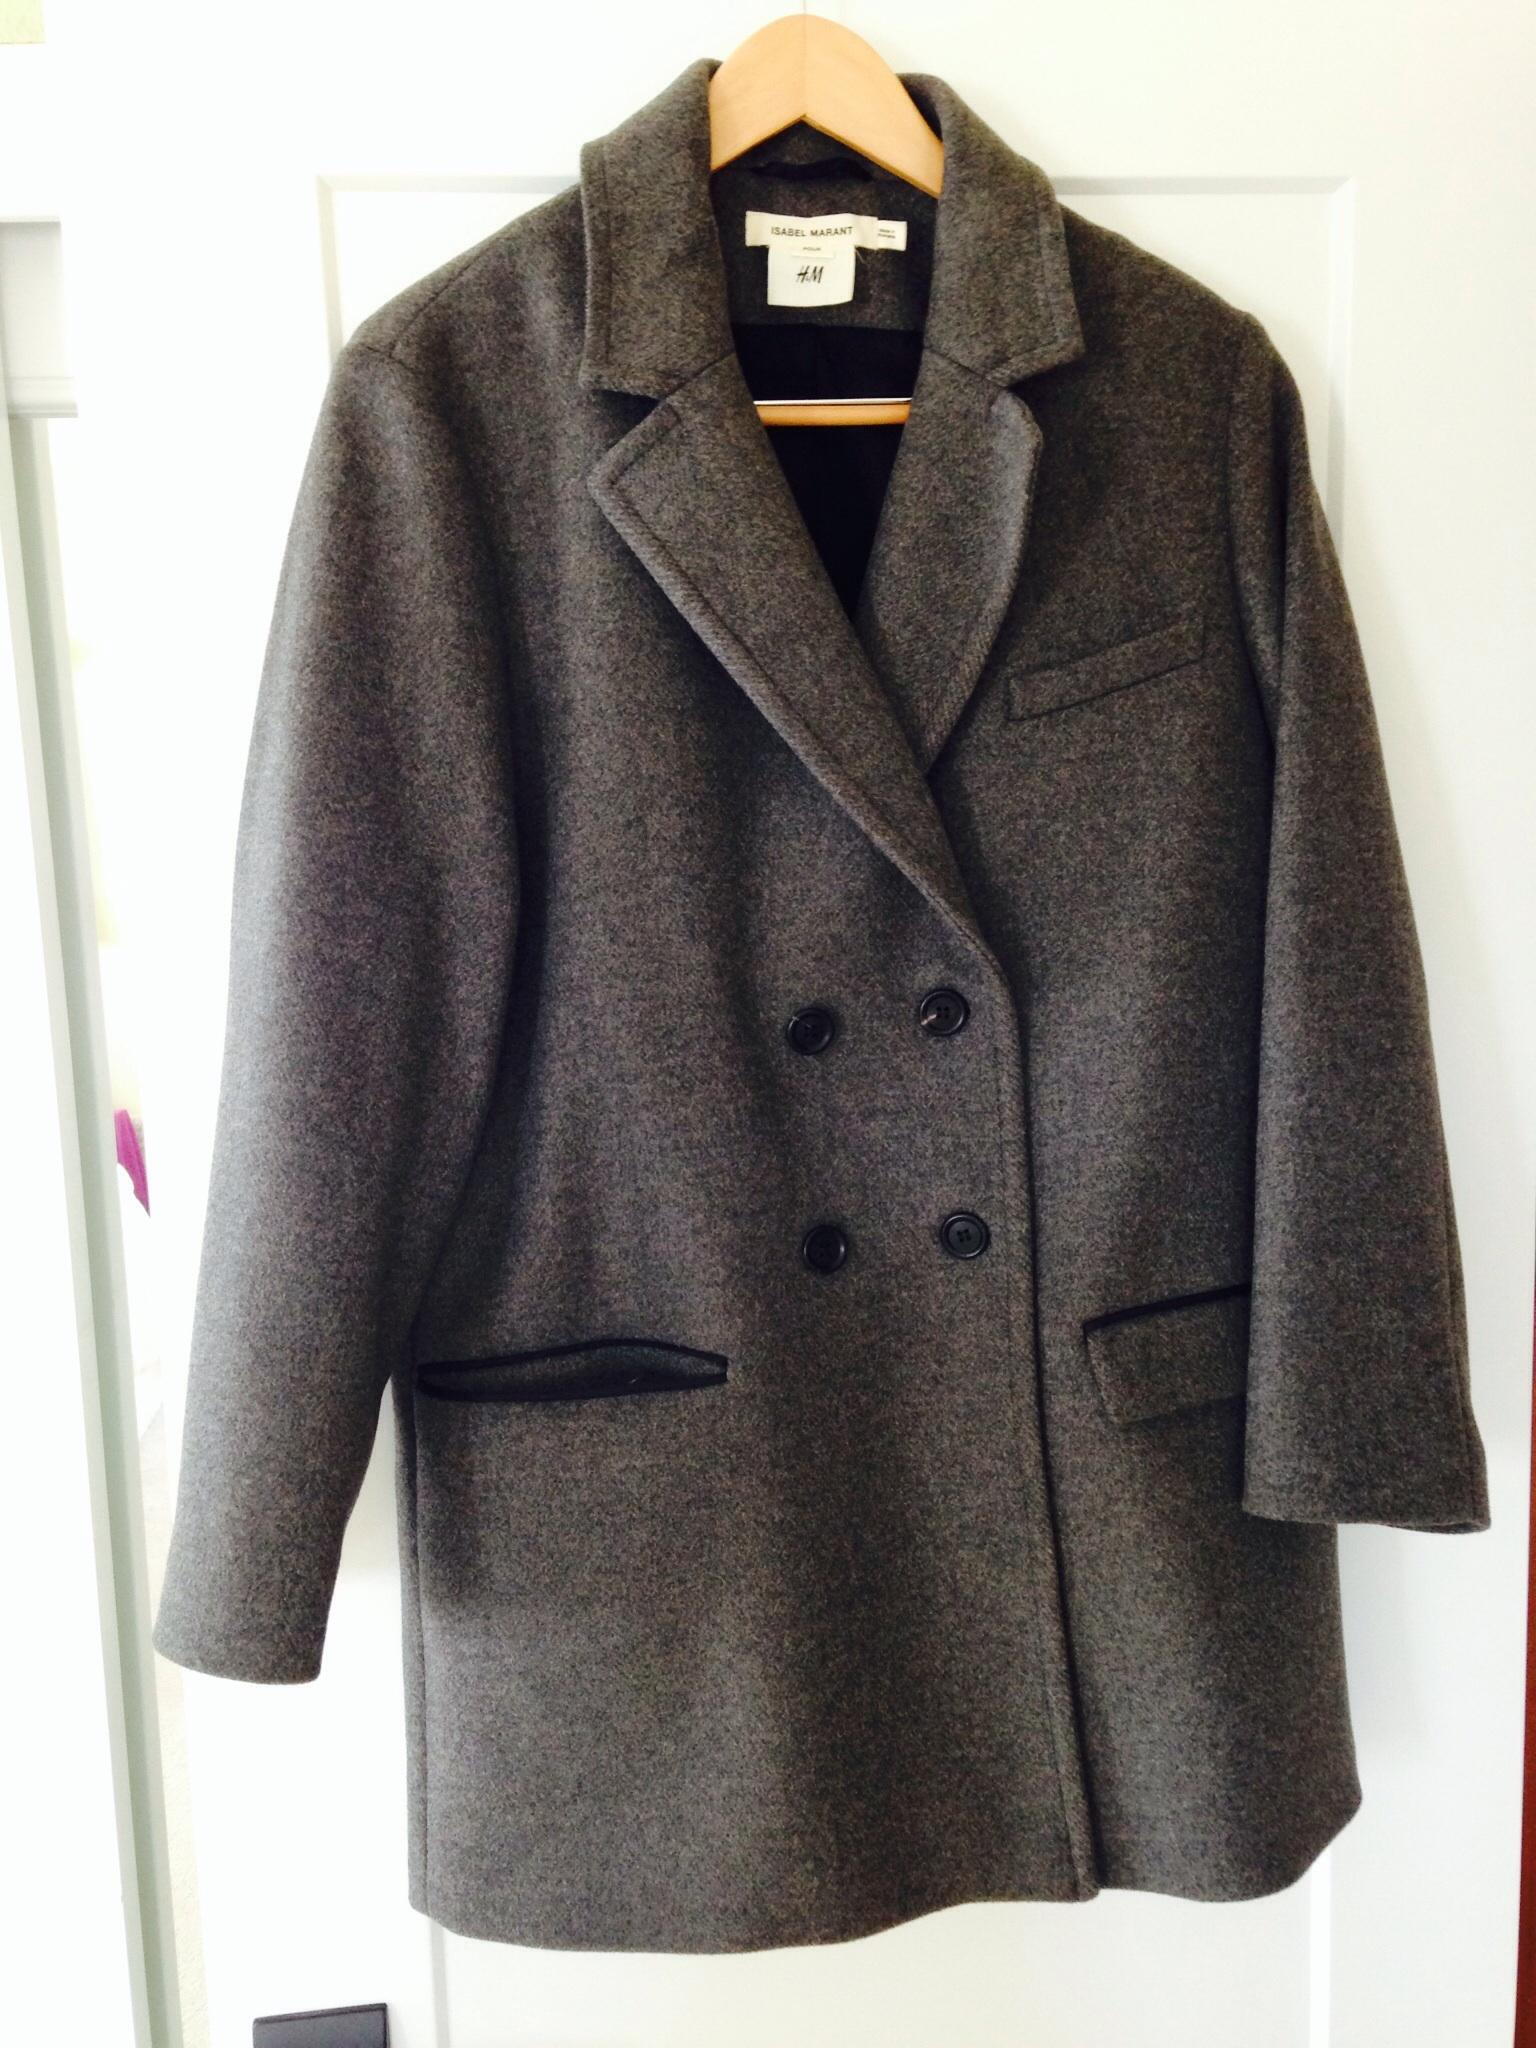 Free shipping and guaranteed authenticity on Isabel Marant Gray For H&m Coat Size 8 (M)Oversized gray double breasted coat in wool.